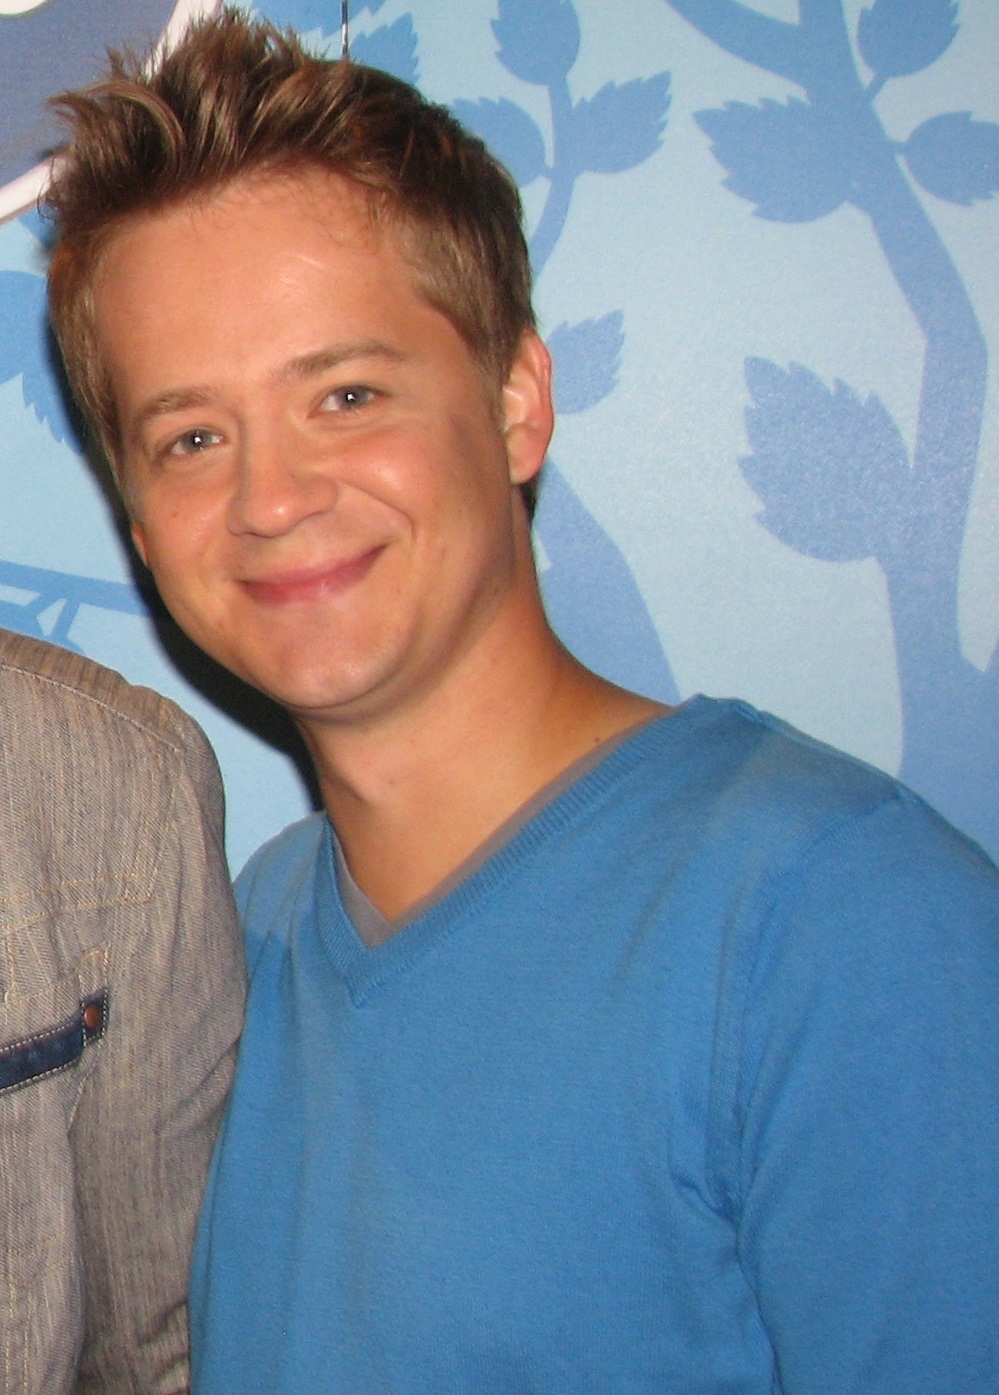 The 41-year old son of father (?) and mother(?) Jason Earles in 2018 photo. Jason Earles earned a  million dollar salary - leaving the net worth at 8 million in 2018